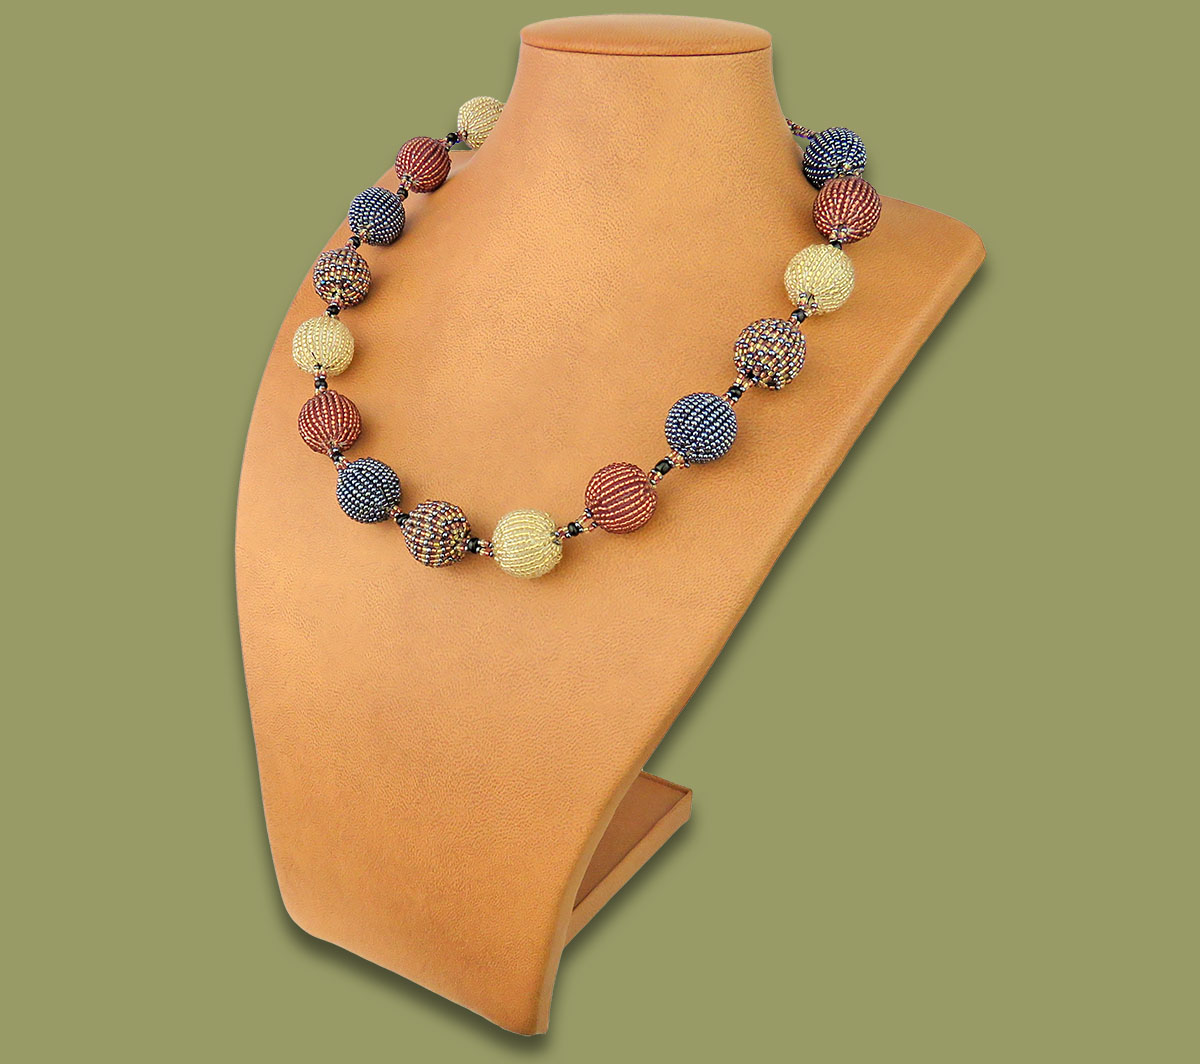 African Beaded Bobble Necklace Copper Metallic White-Gold